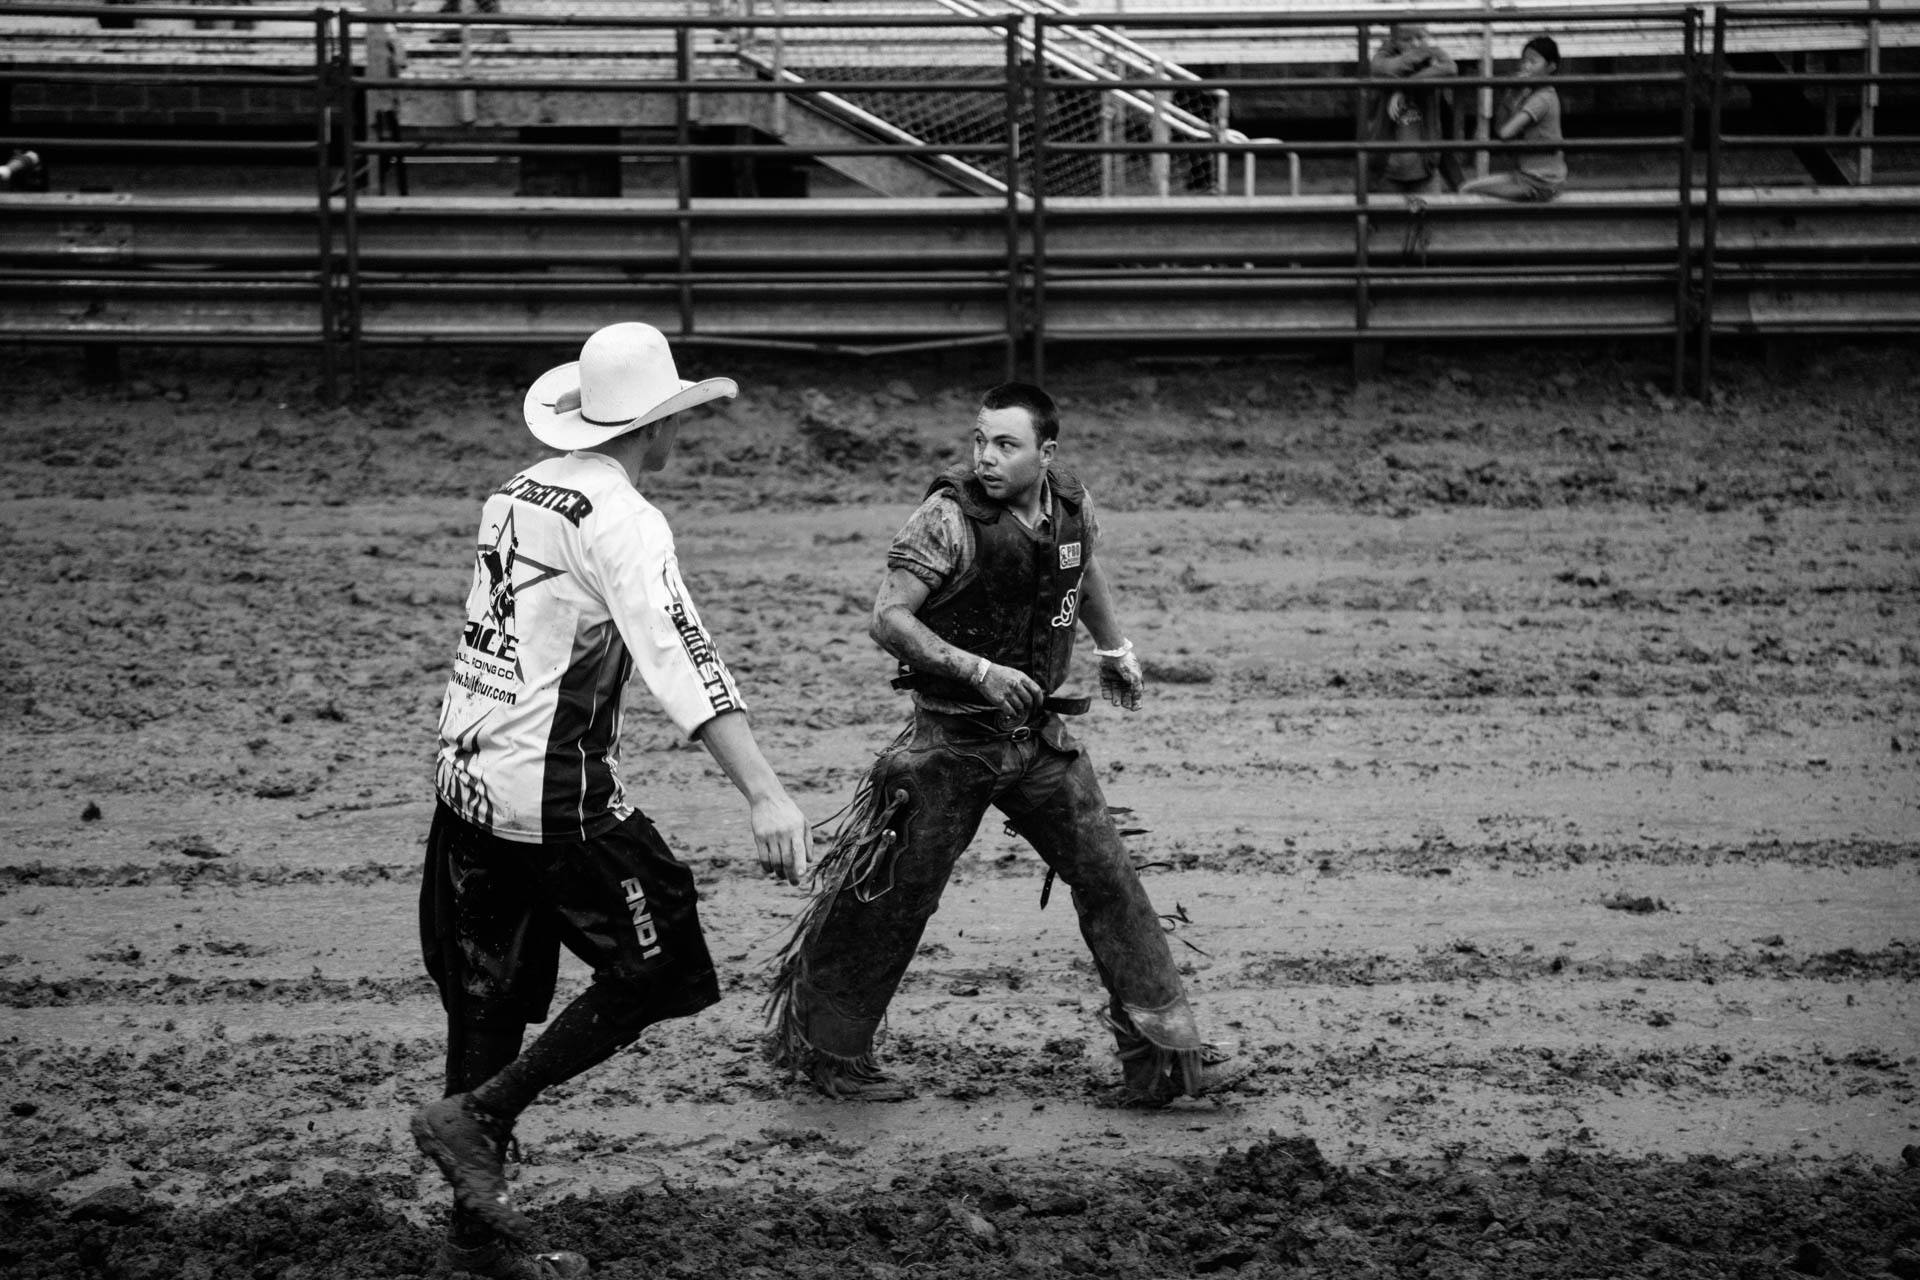 scared-bull-rider-muddy-arena-rice-bull-fighter-a4843